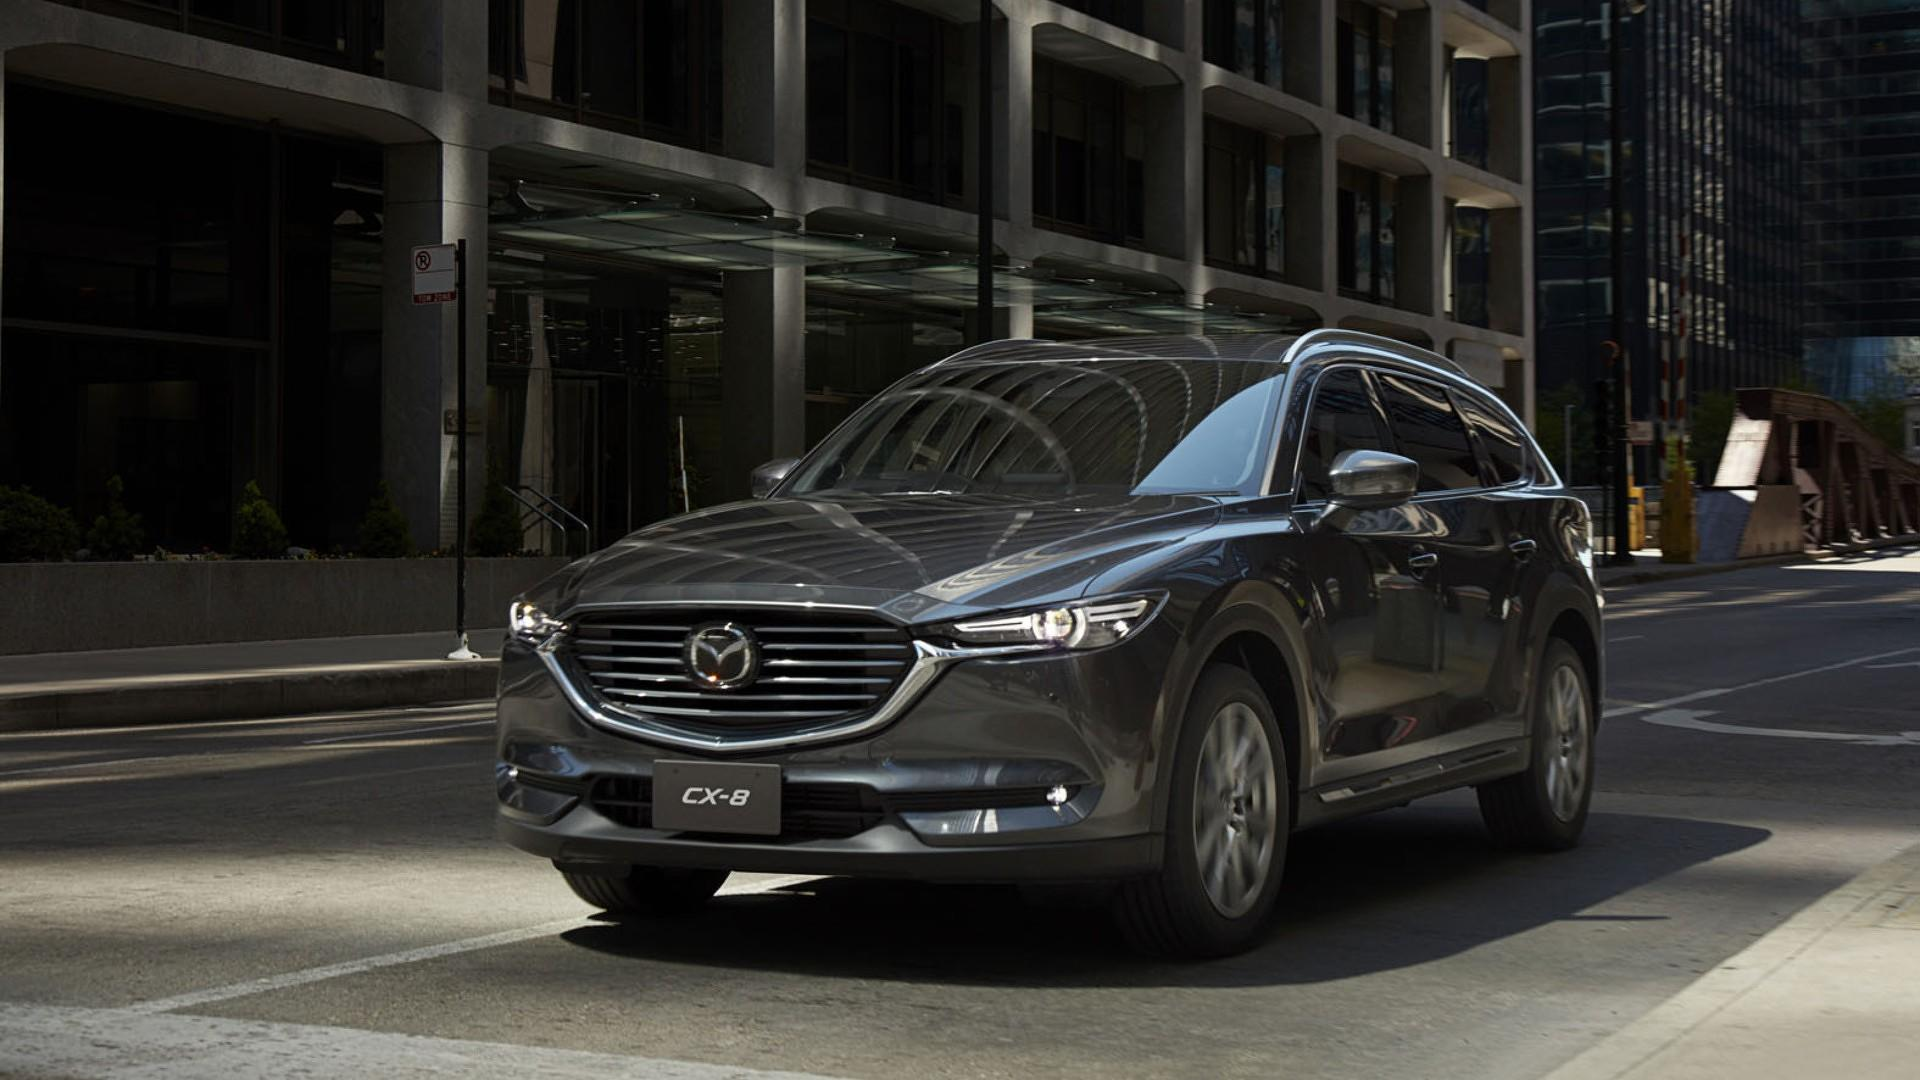 ... 2018 Mazda CX 8 Seven Seat Crossover (Japan Spec Model) ...